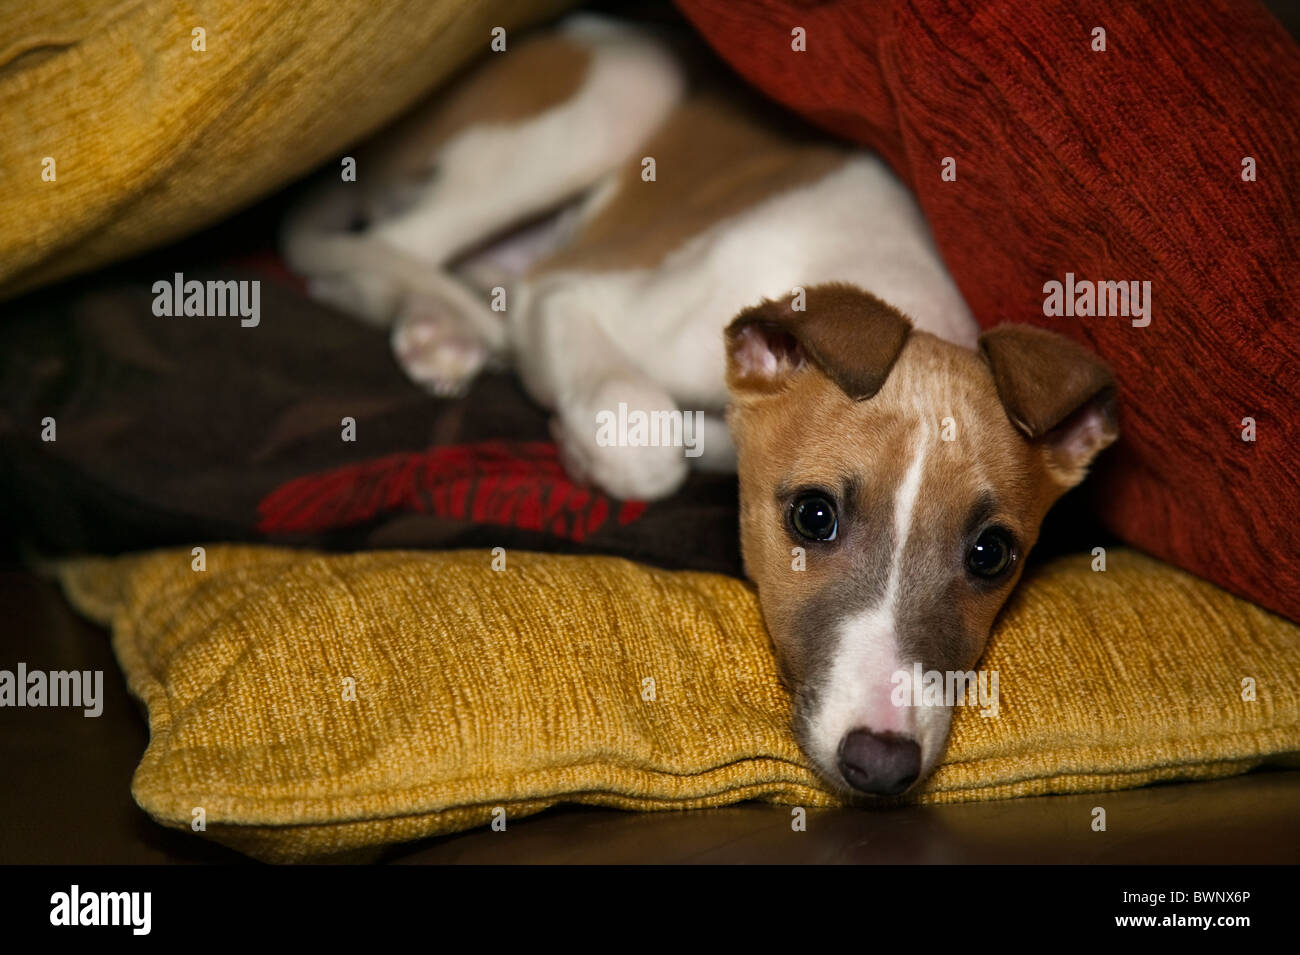 A whippet cross puppy lying on a cushion - Stock Image